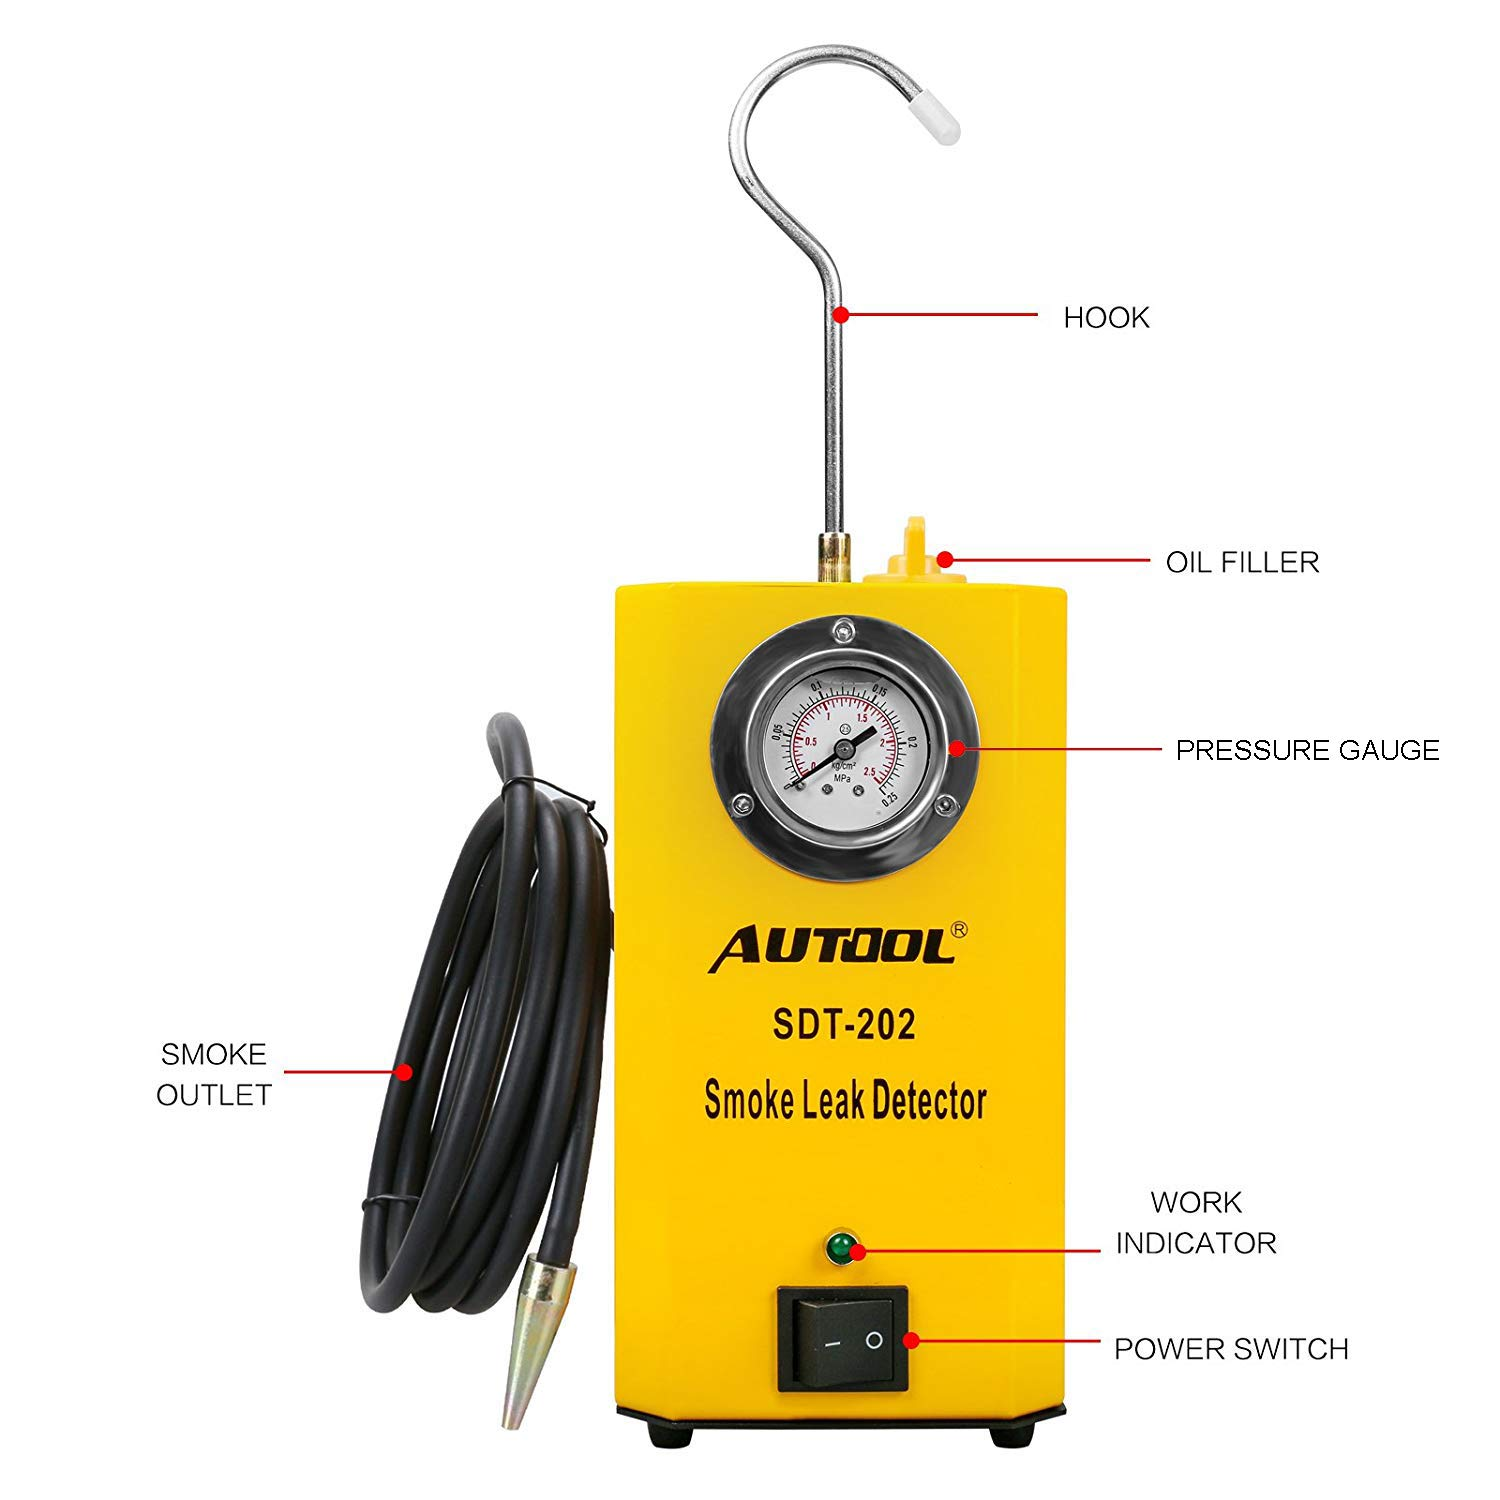 AUTOOL SDT 202 12V Automotive Fuel Leak Detectors with Pressure Gauge by AUTOOL (Image #1)